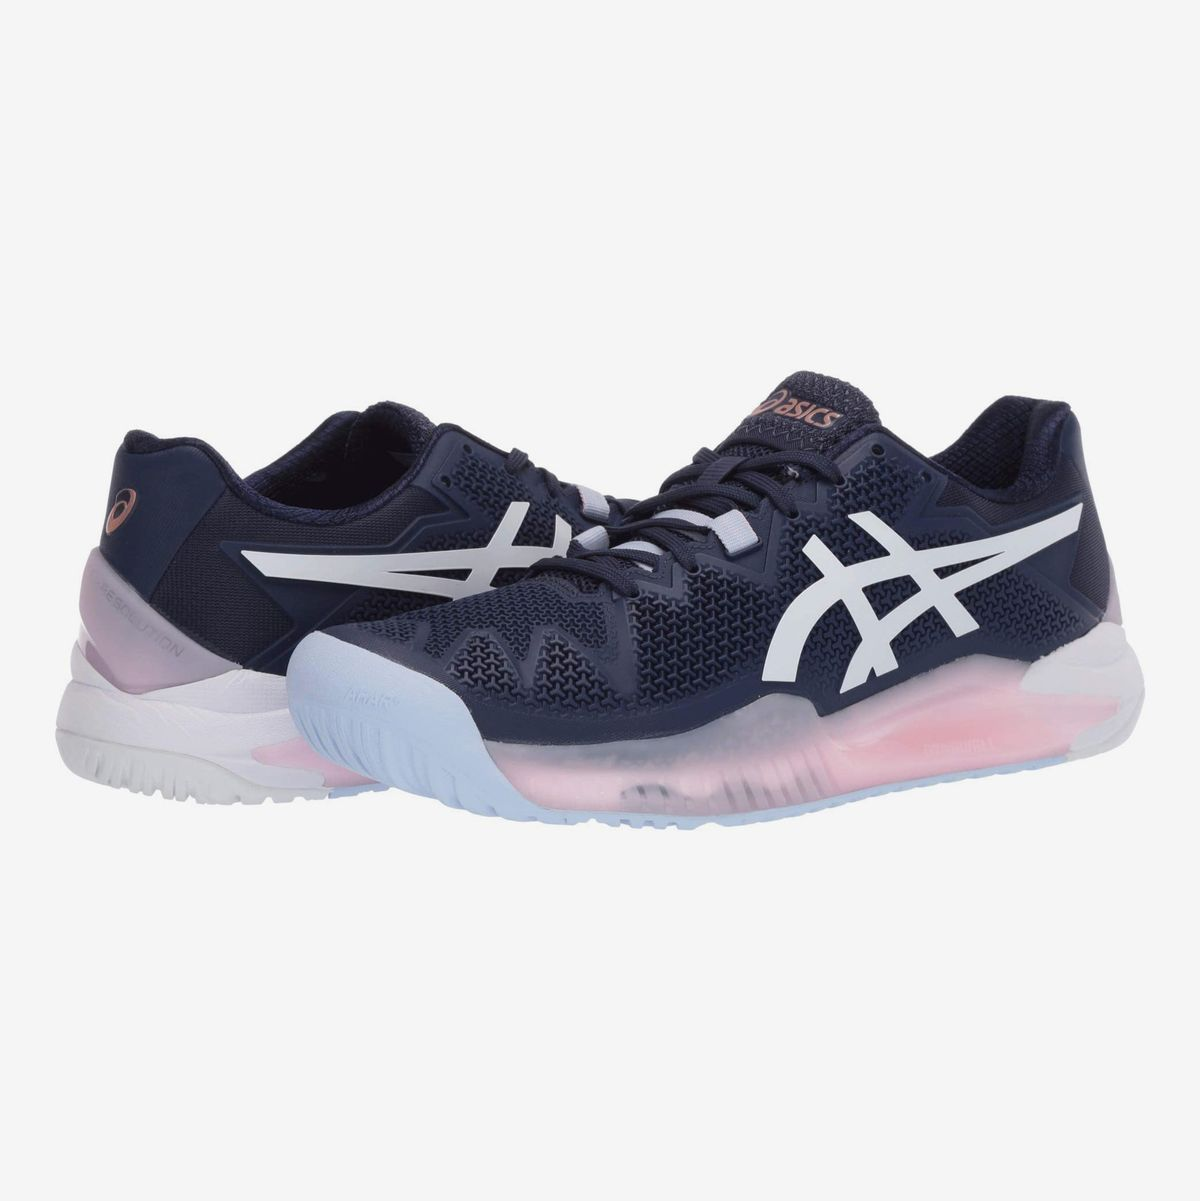 best shoes to play tennis women's